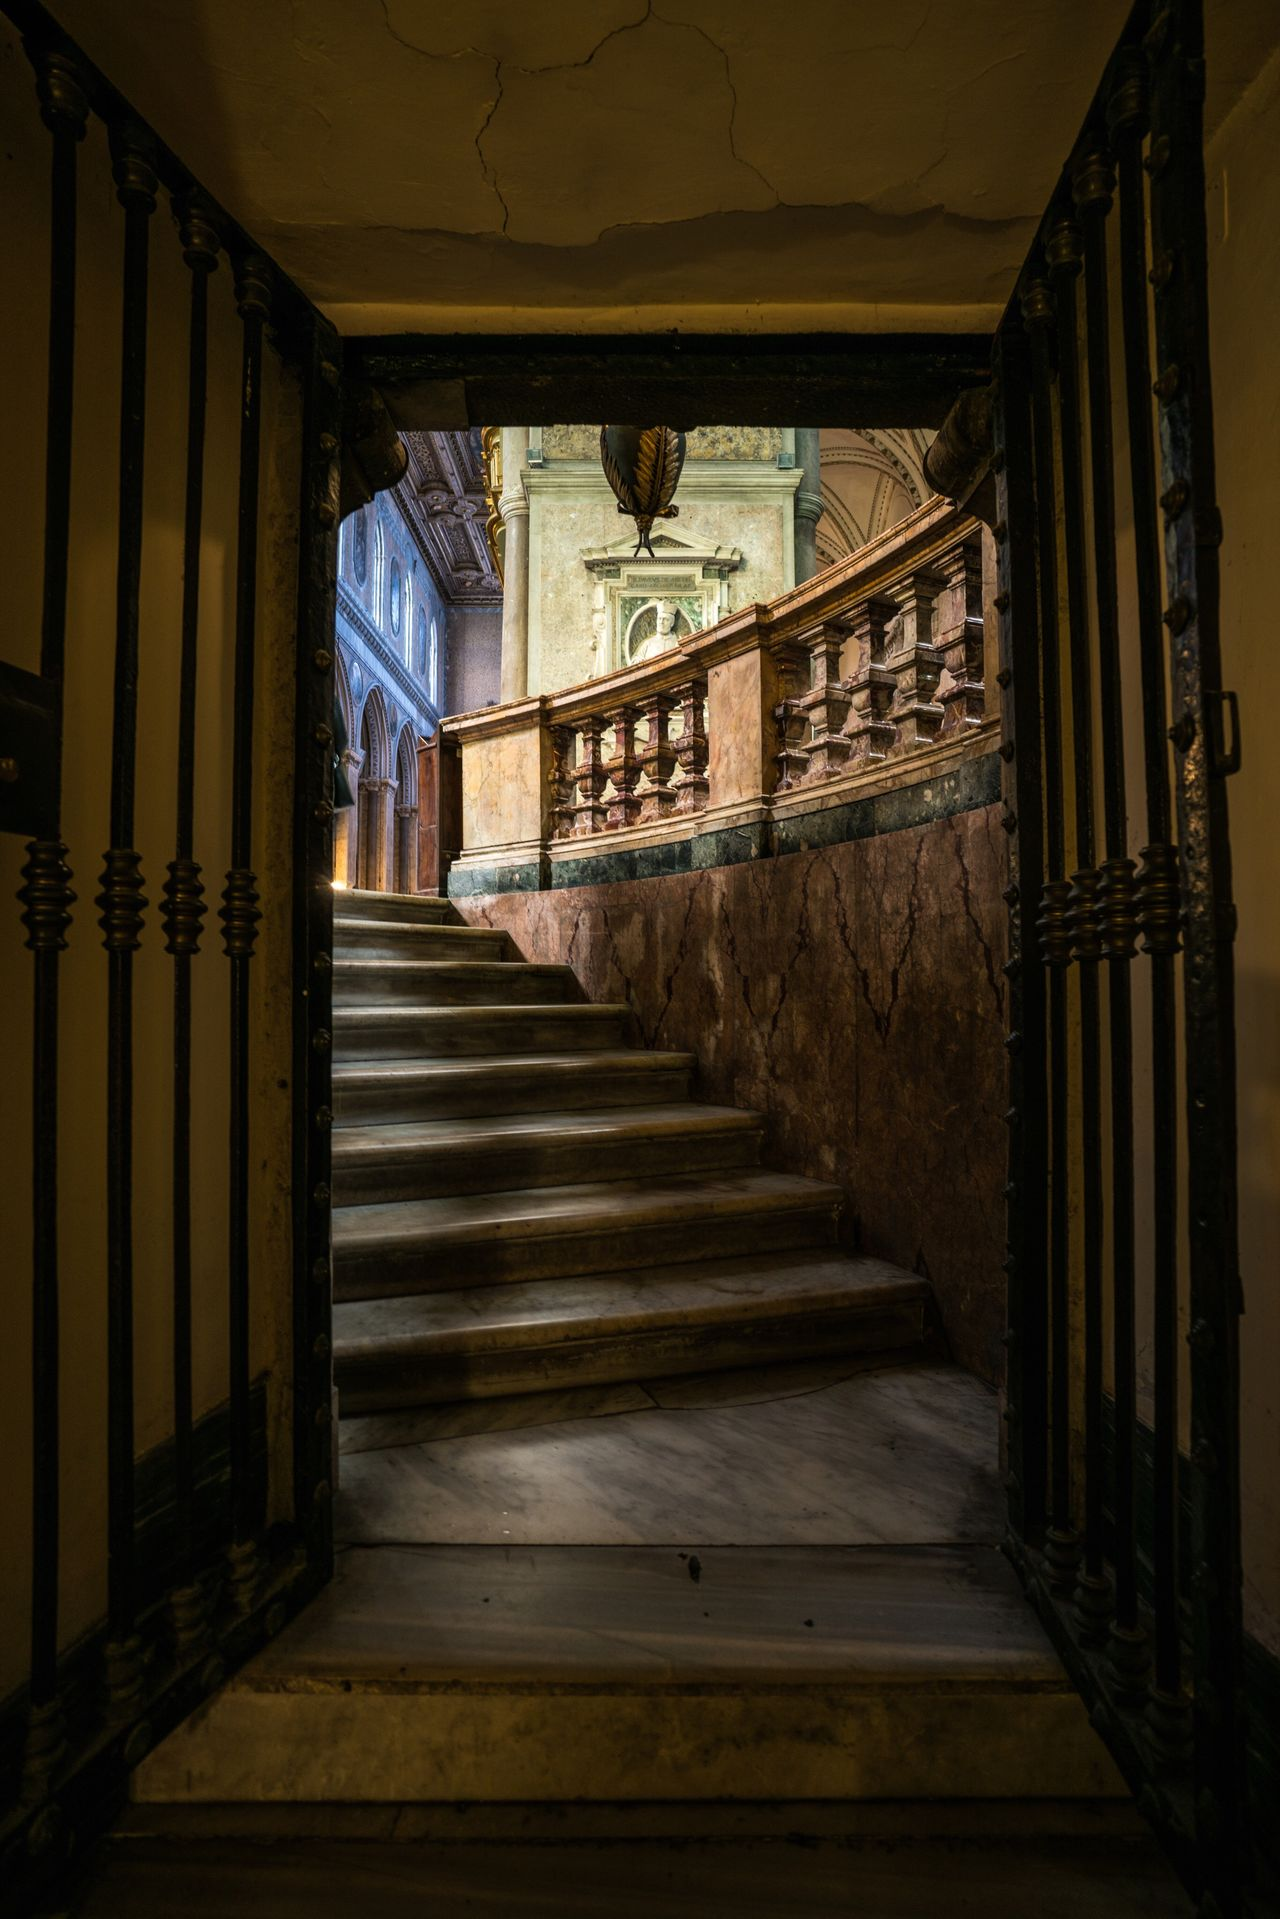 Out of the Dungeon. Staircase Steps Steps And Staircases Indoors  Architecture Stairs Church Duomo Cathedral Religion Napoli Naples Italy❤️ Italia Italy Bella Italia City Spirituality Colors Interior Design